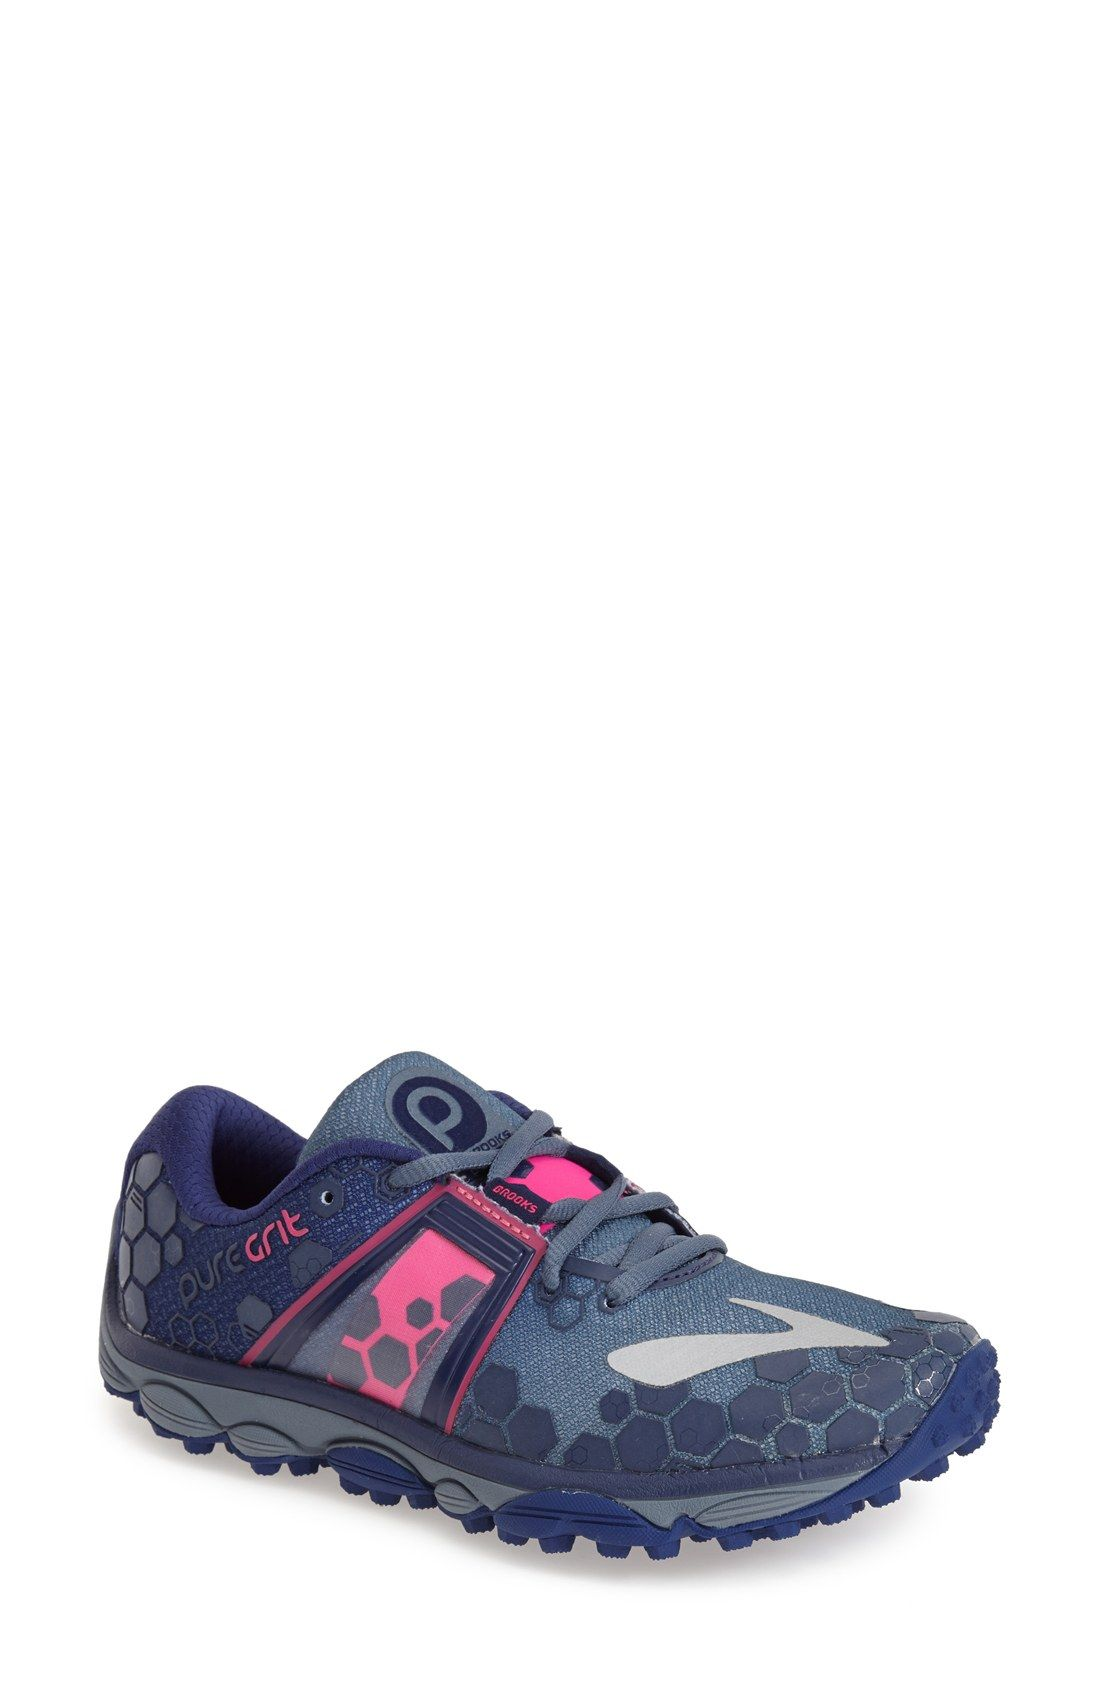 0d289731b4d Brooks  PureGrit 4  Trail Running Shoe (Women) size 8.5  119. -for all the  rainy trails in my future.